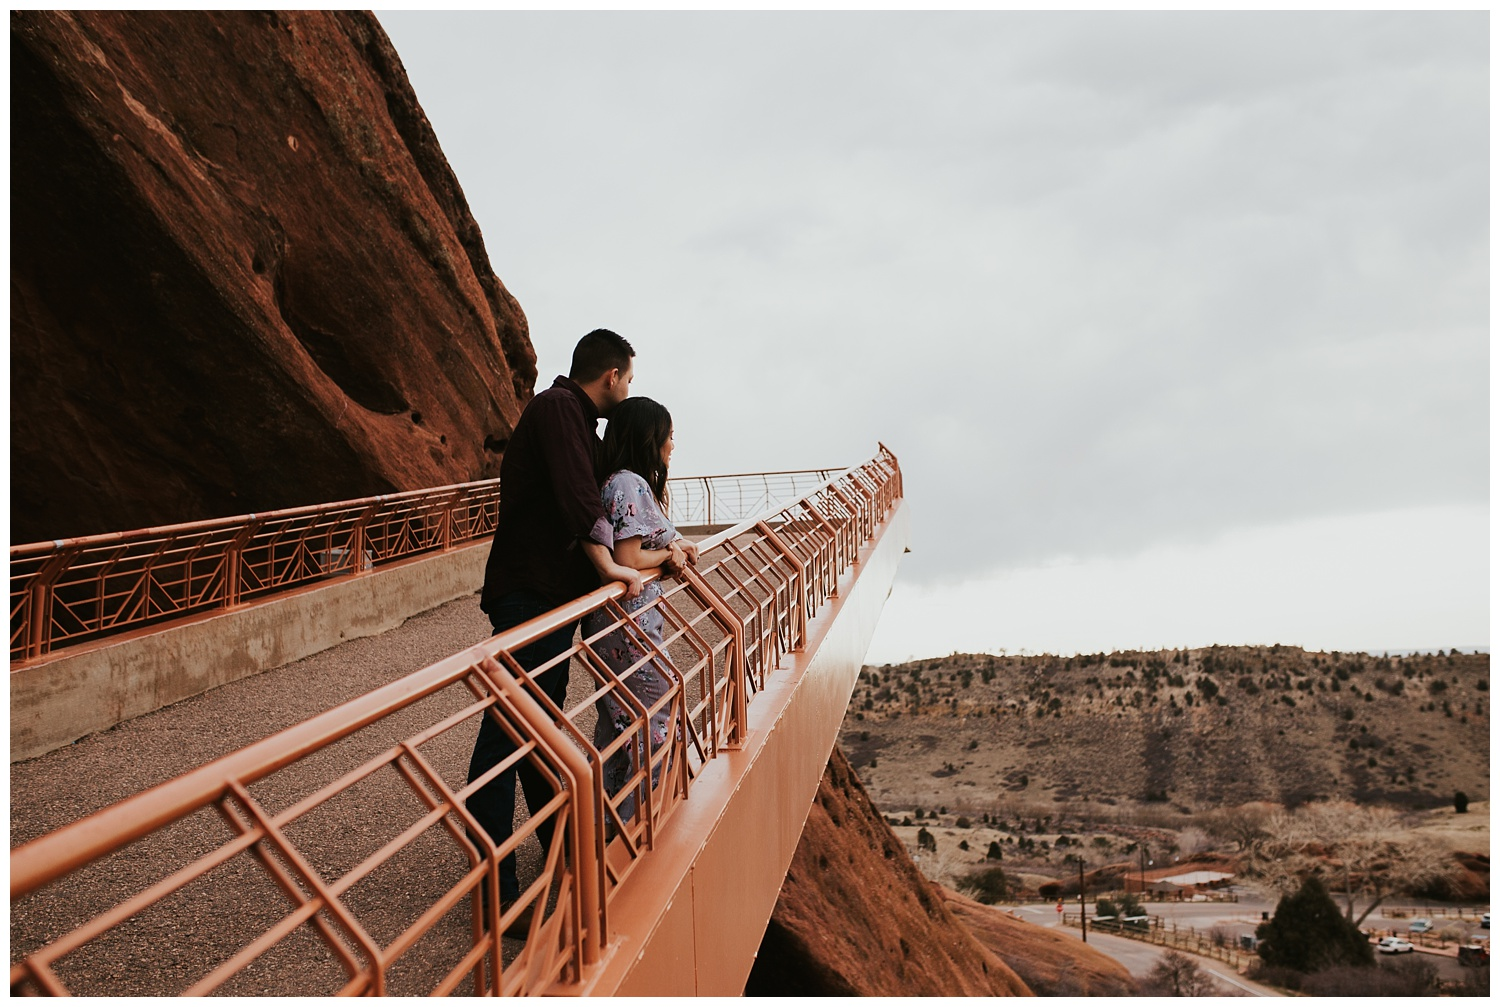 Meredith_Soy_Photography_Red_Rocks_Photographer_0019.jpg